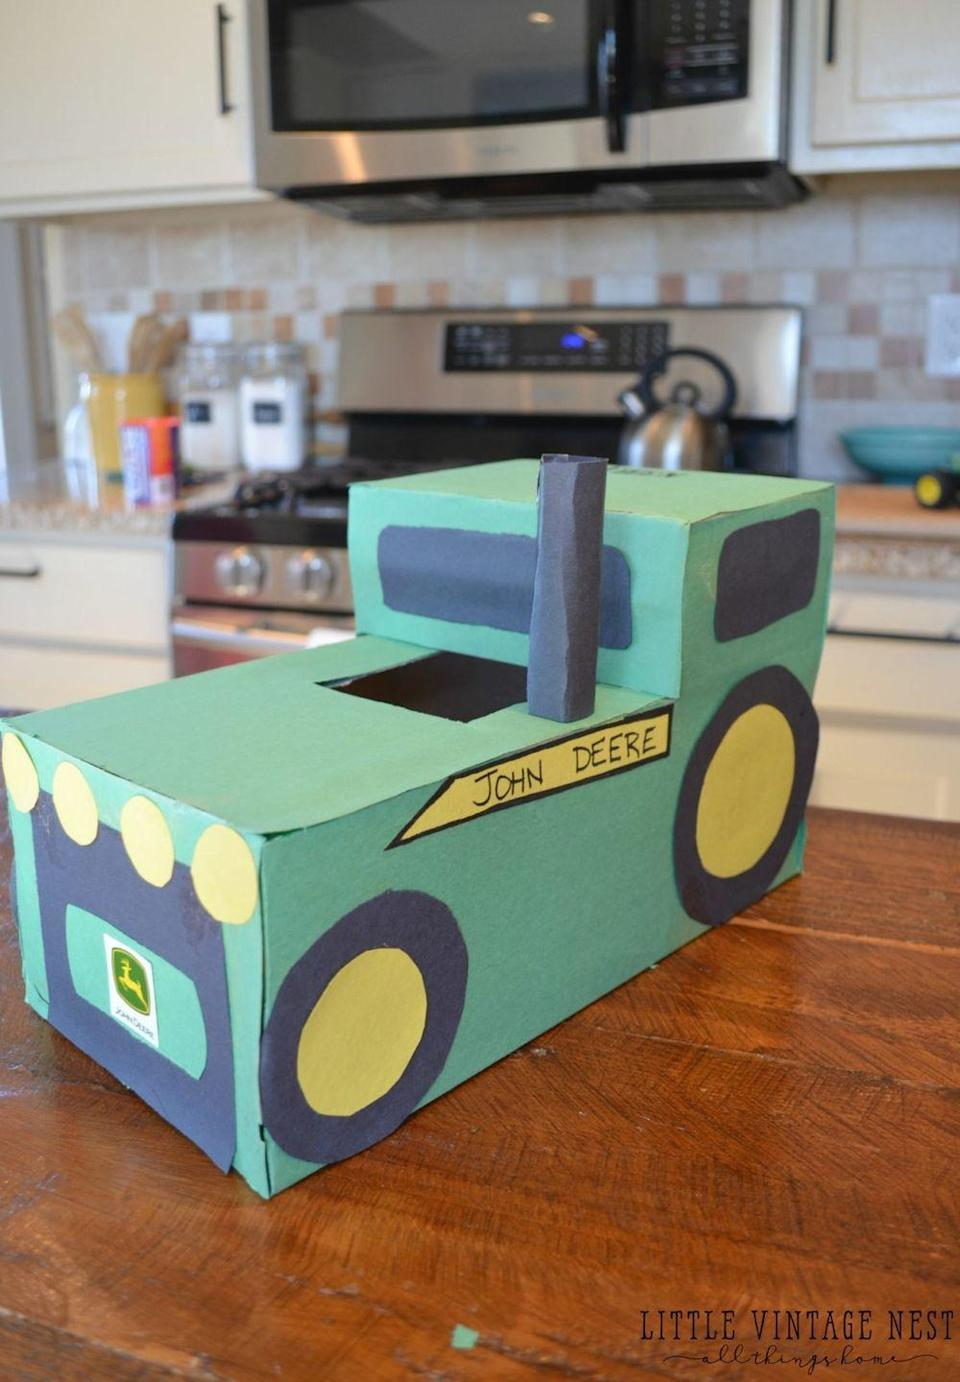 "<p>Two boxes team up to form the frame of this John Deere Valentine's Day box fit for boys and girls growing up in the country.</p><p><strong>Get the tutorial at <a href=""https://sarahjoyblog.com/tractor-valentines-day-box/"" rel=""nofollow noopener"" target=""_blank"" data-ylk=""slk:Sarah Joy Blog"" class=""link rapid-noclick-resp"">Sarah Joy Blog</a>.</strong></p><p><strong><a class=""link rapid-noclick-resp"" href=""https://www.amazon.com/Glue-Sticks/b?ie=UTF8&node=1068996&tag=syn-yahoo-20&ascsubtag=%5Bartid%7C10050.g.25844424%5Bsrc%7Cyahoo-us"" rel=""nofollow noopener"" target=""_blank"" data-ylk=""slk:SHOP GLUE STICKS"">SHOP GLUE STICKS</a><br></strong></p>"